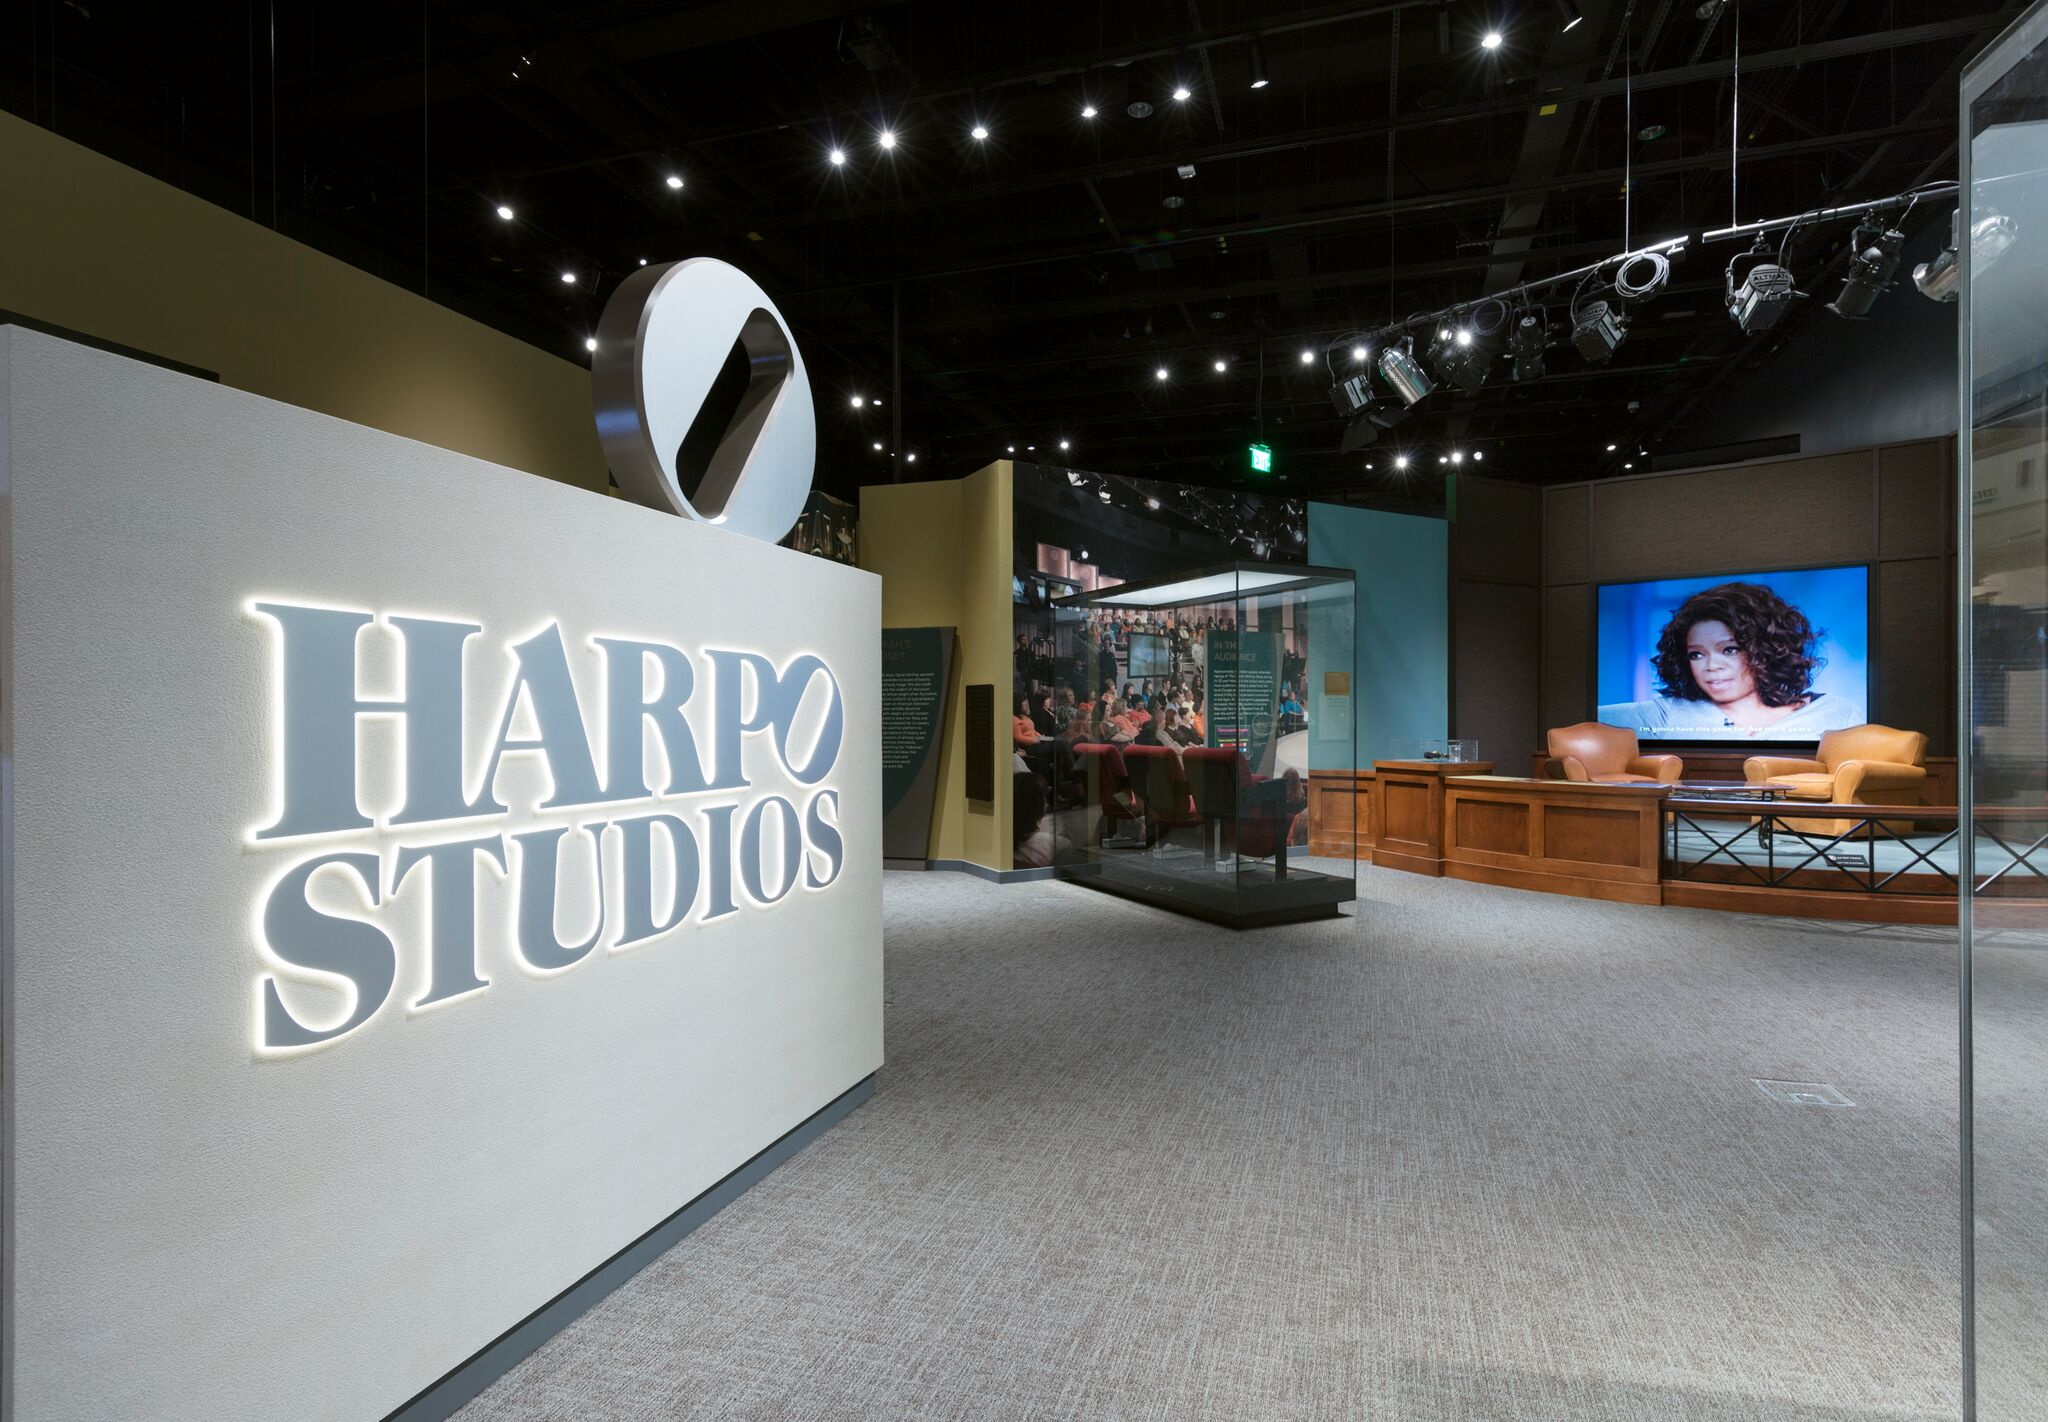 Pieces from the Harpo Studio set are featured in the Smithsonian's new temporary exhibit on Oprah Winfrey.